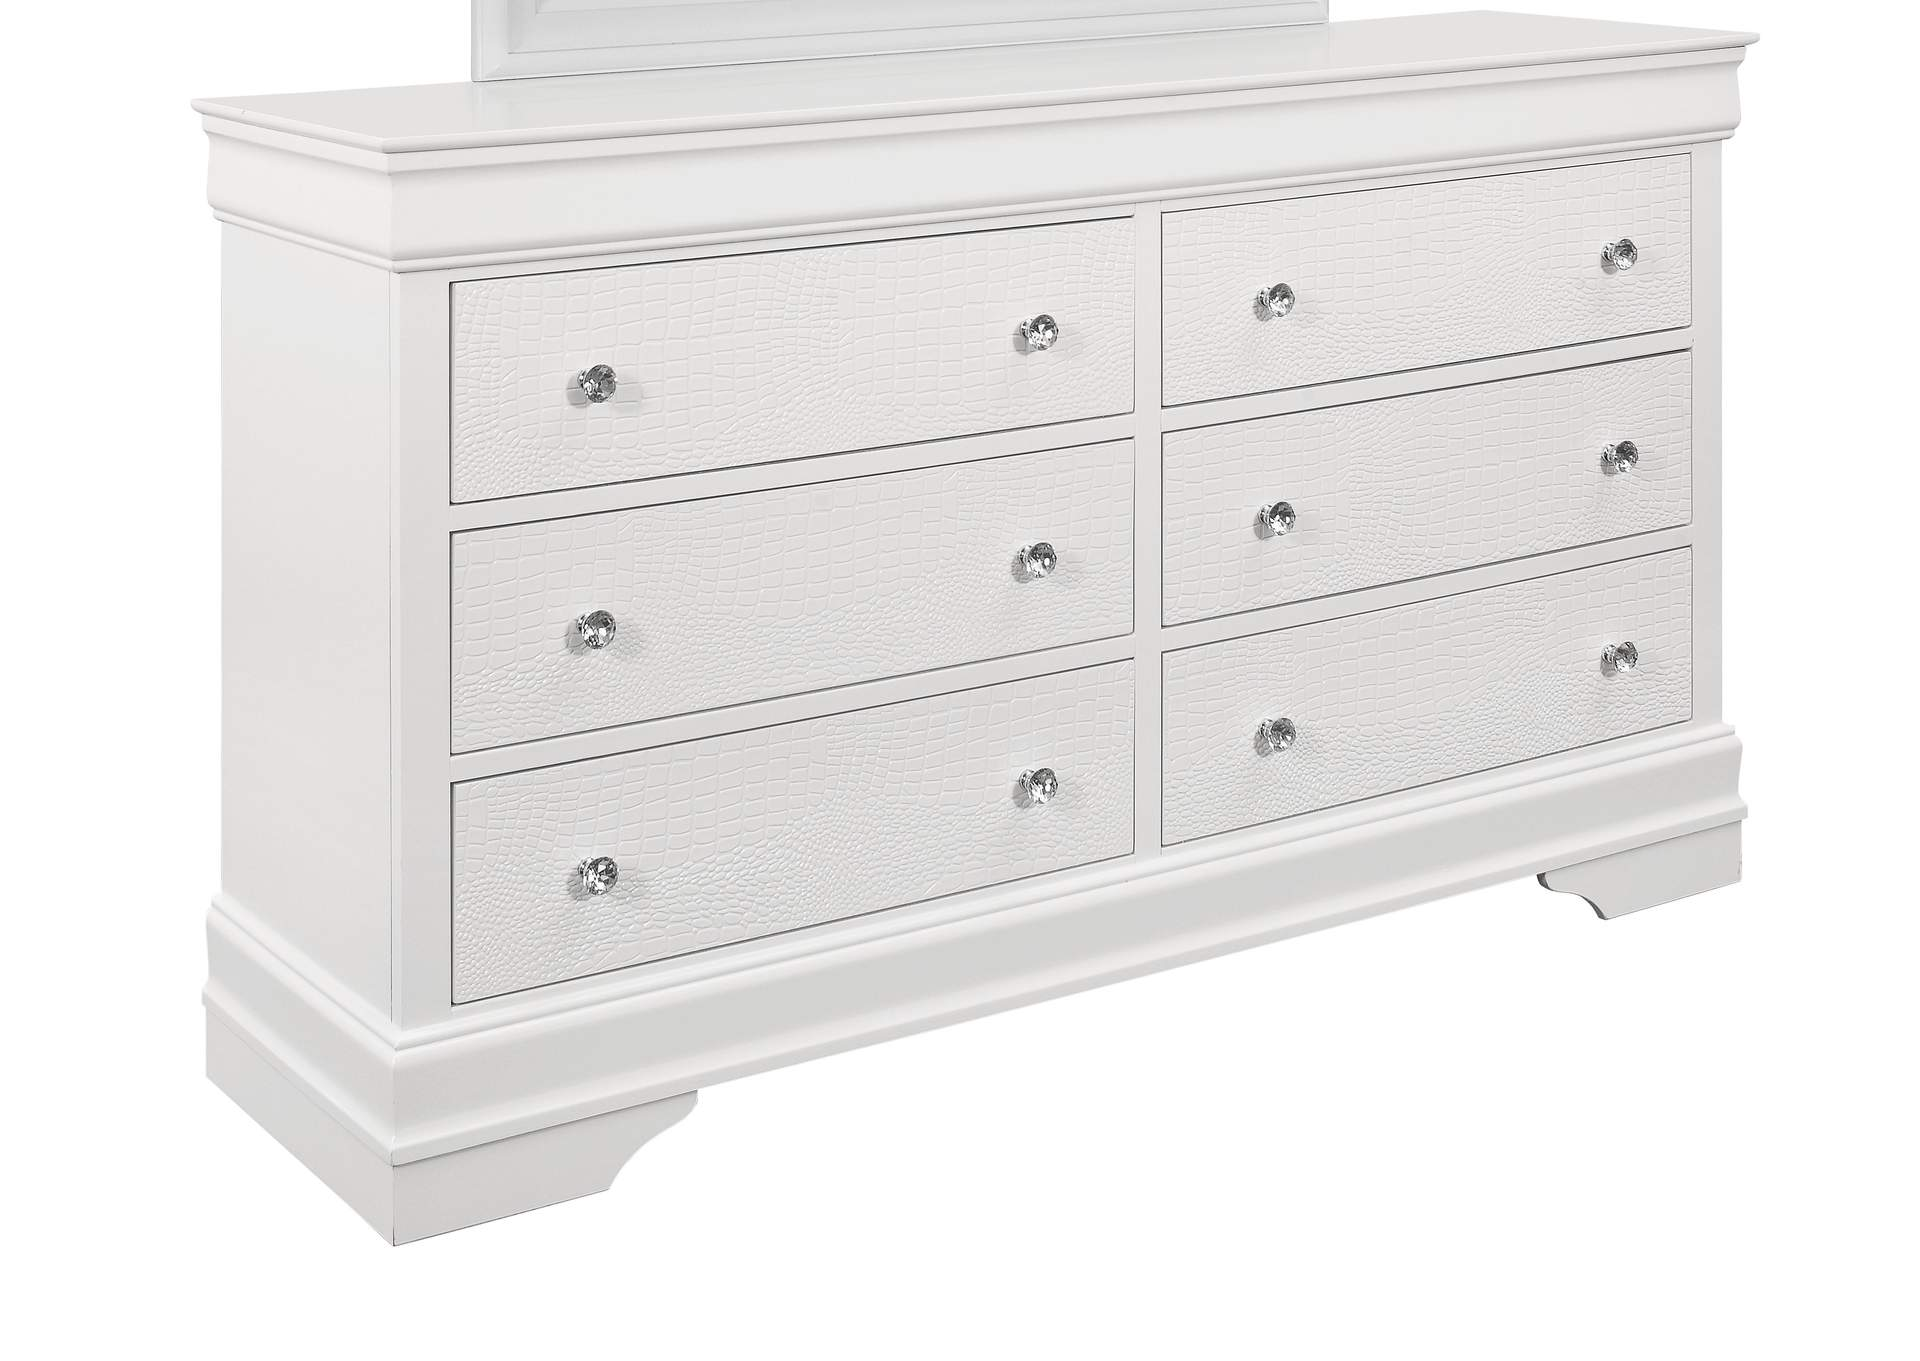 Pompei Metallic White Dresser,Global Furniture USA